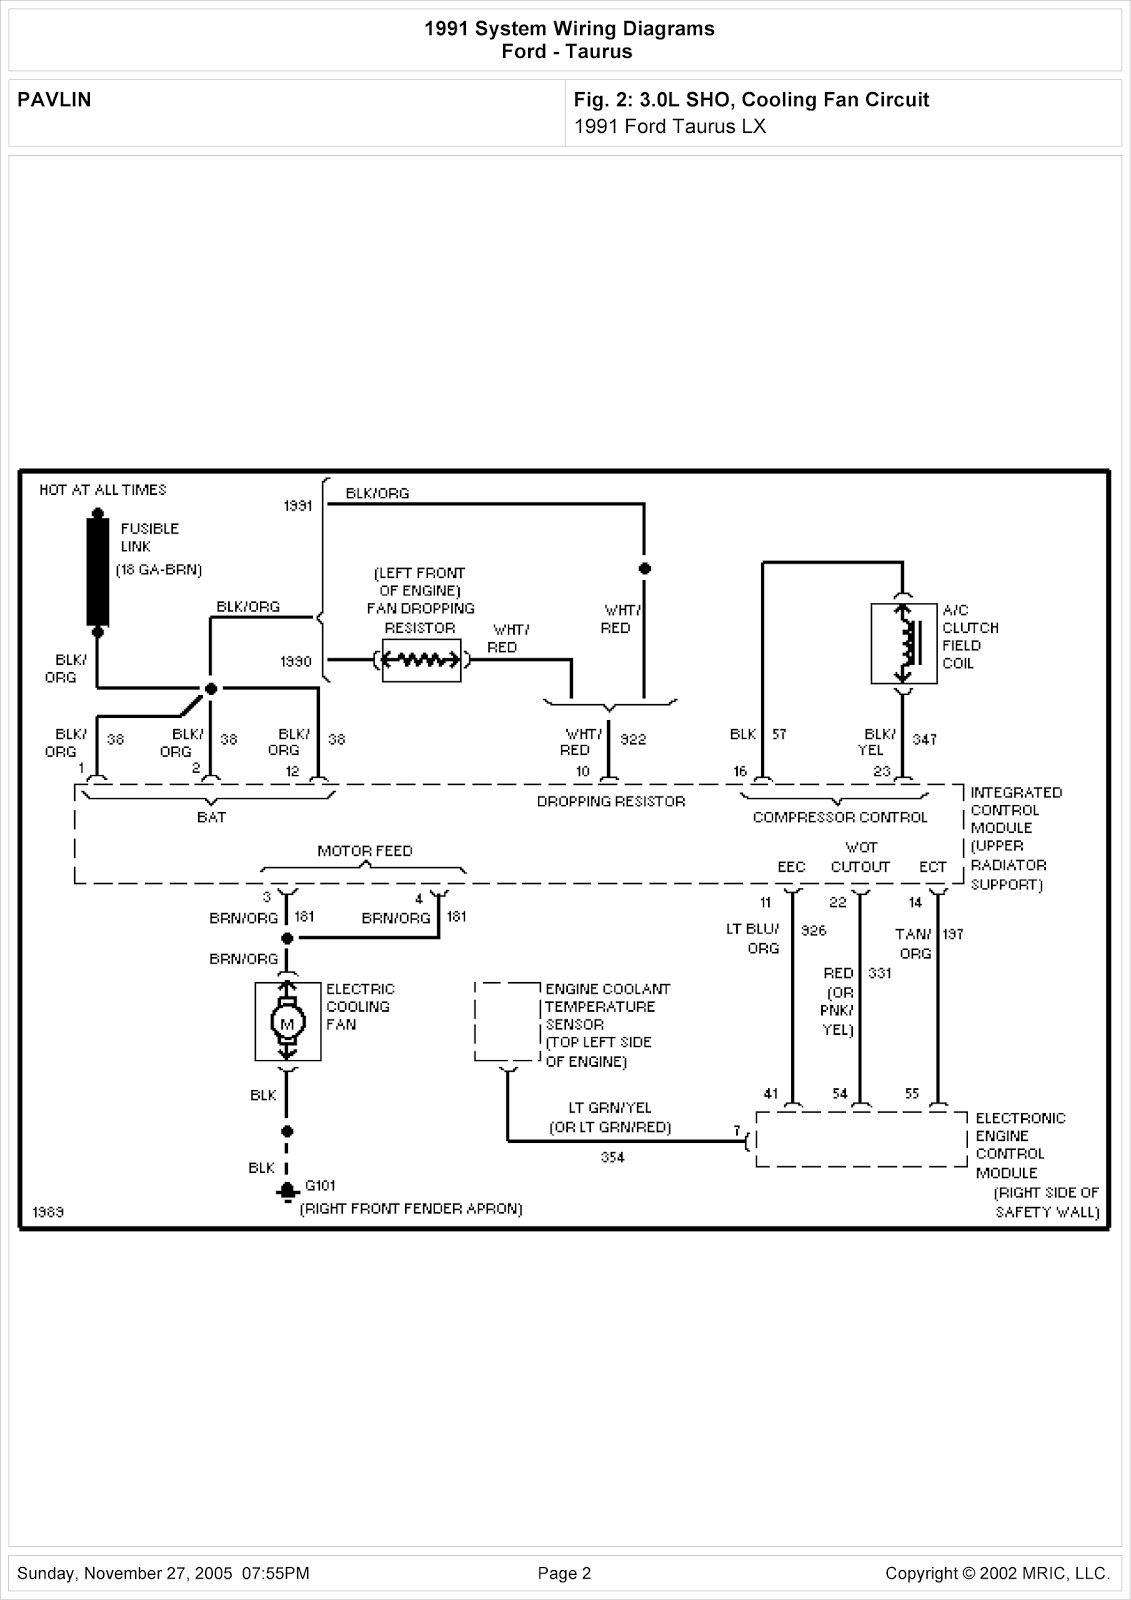 Ford Taurus System Wiring Diagram Cooling Fan Circuit